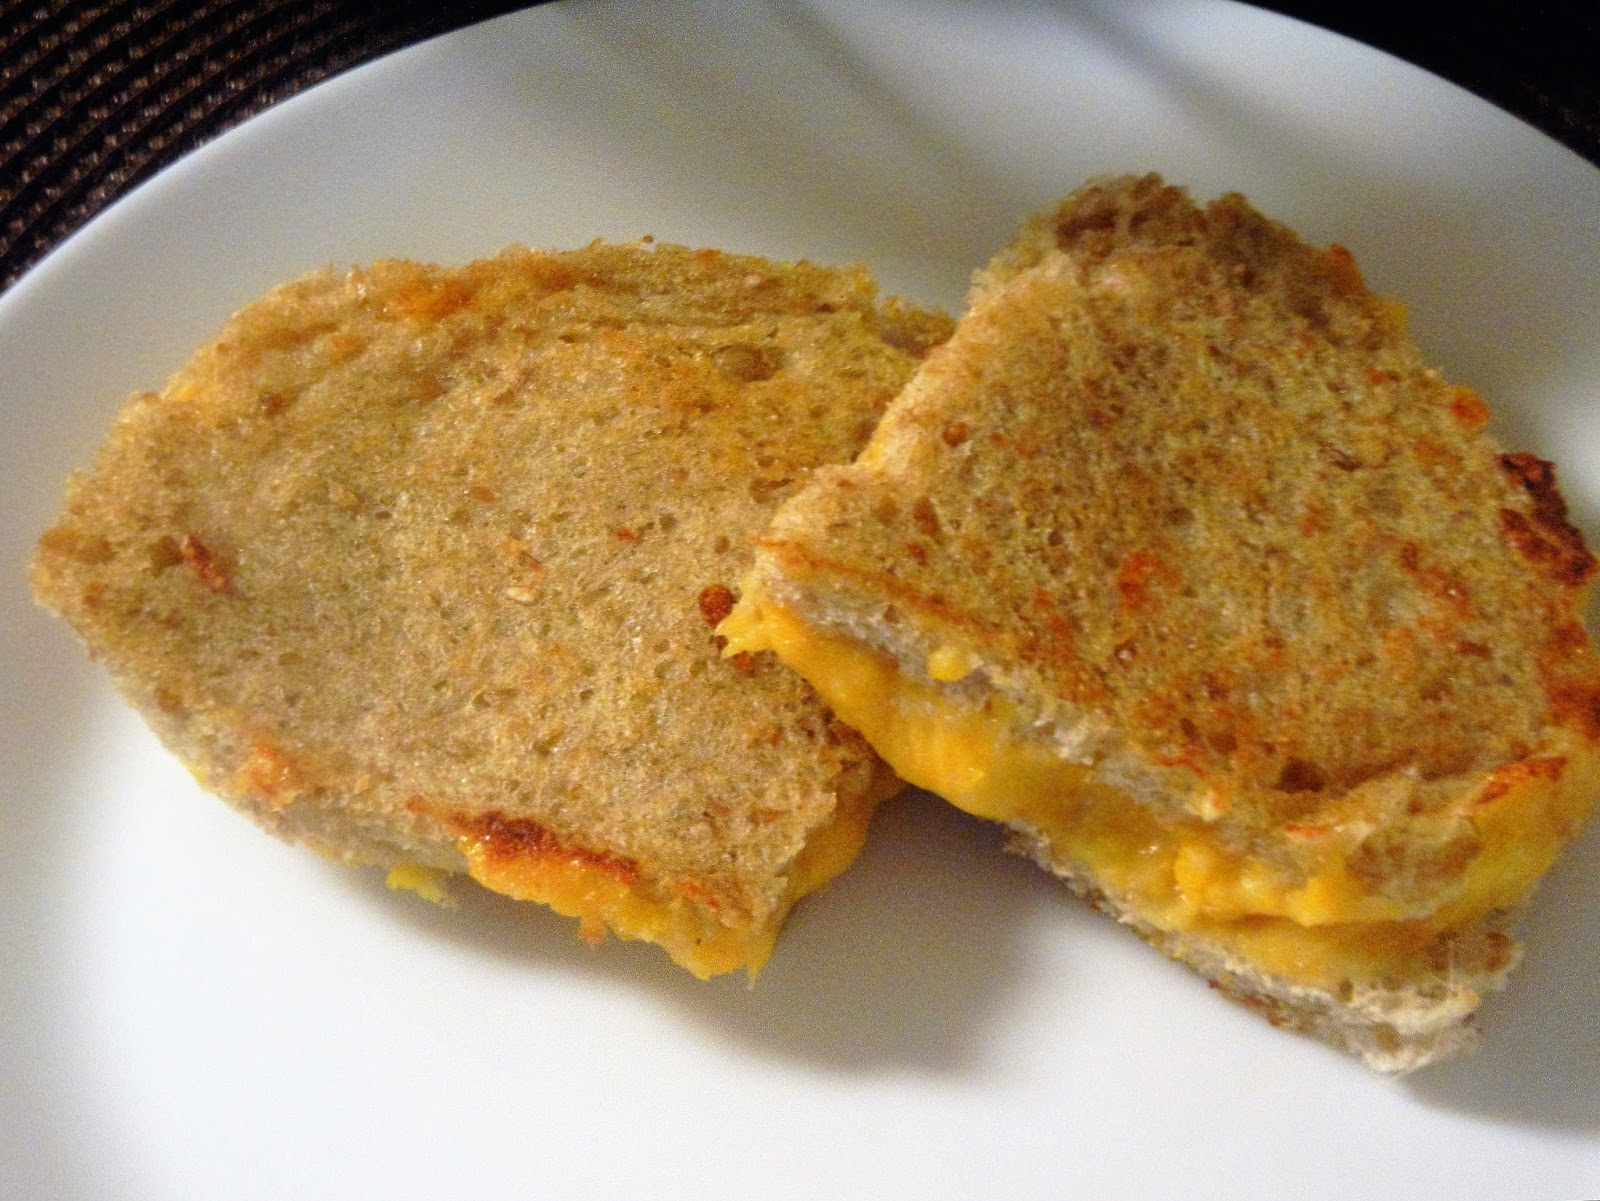 Gitas kitchen a blog for indian diabetic recipes and healthy recipes butternut squash cheese sandwich forumfinder Choice Image